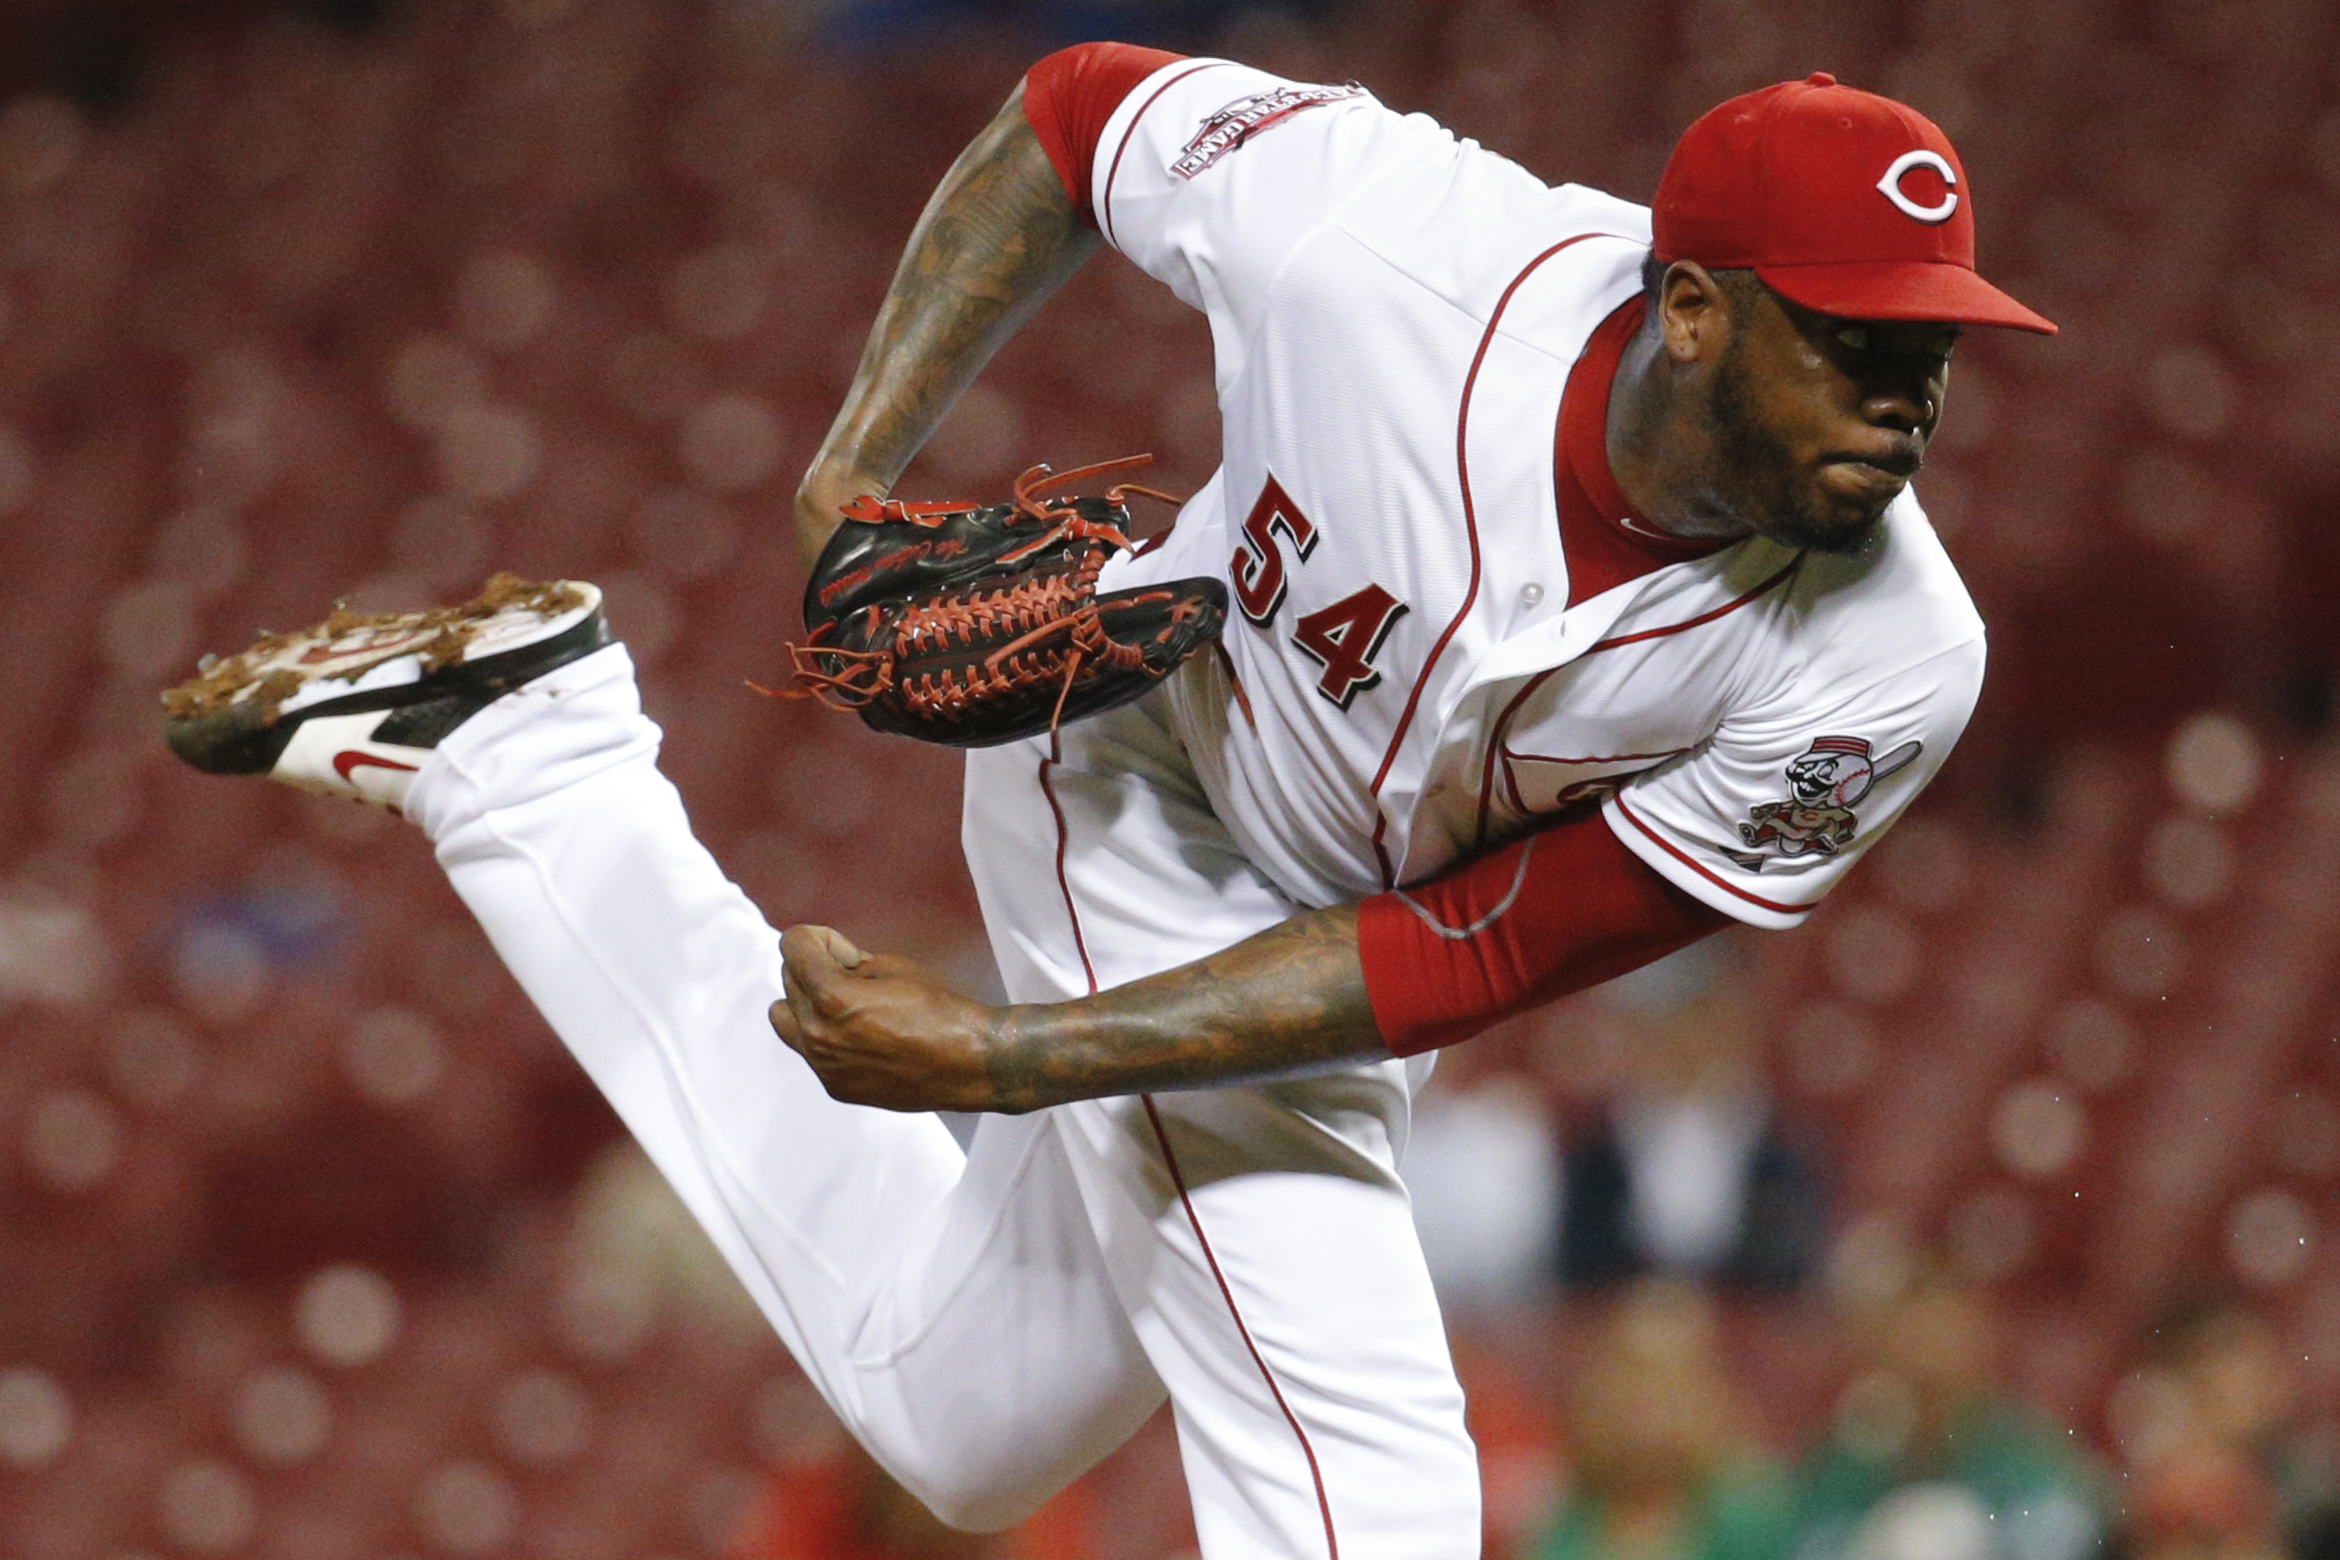 Cincinnati Reds relief pitcher Aroldis Chapman throws in the ninth inning of a baseball game against the Chicago Cubs, Wednesday, Sept. 30, 2015, in Cincinnati. The Cubs won 4-1. (AP Photo/John Minchillo)